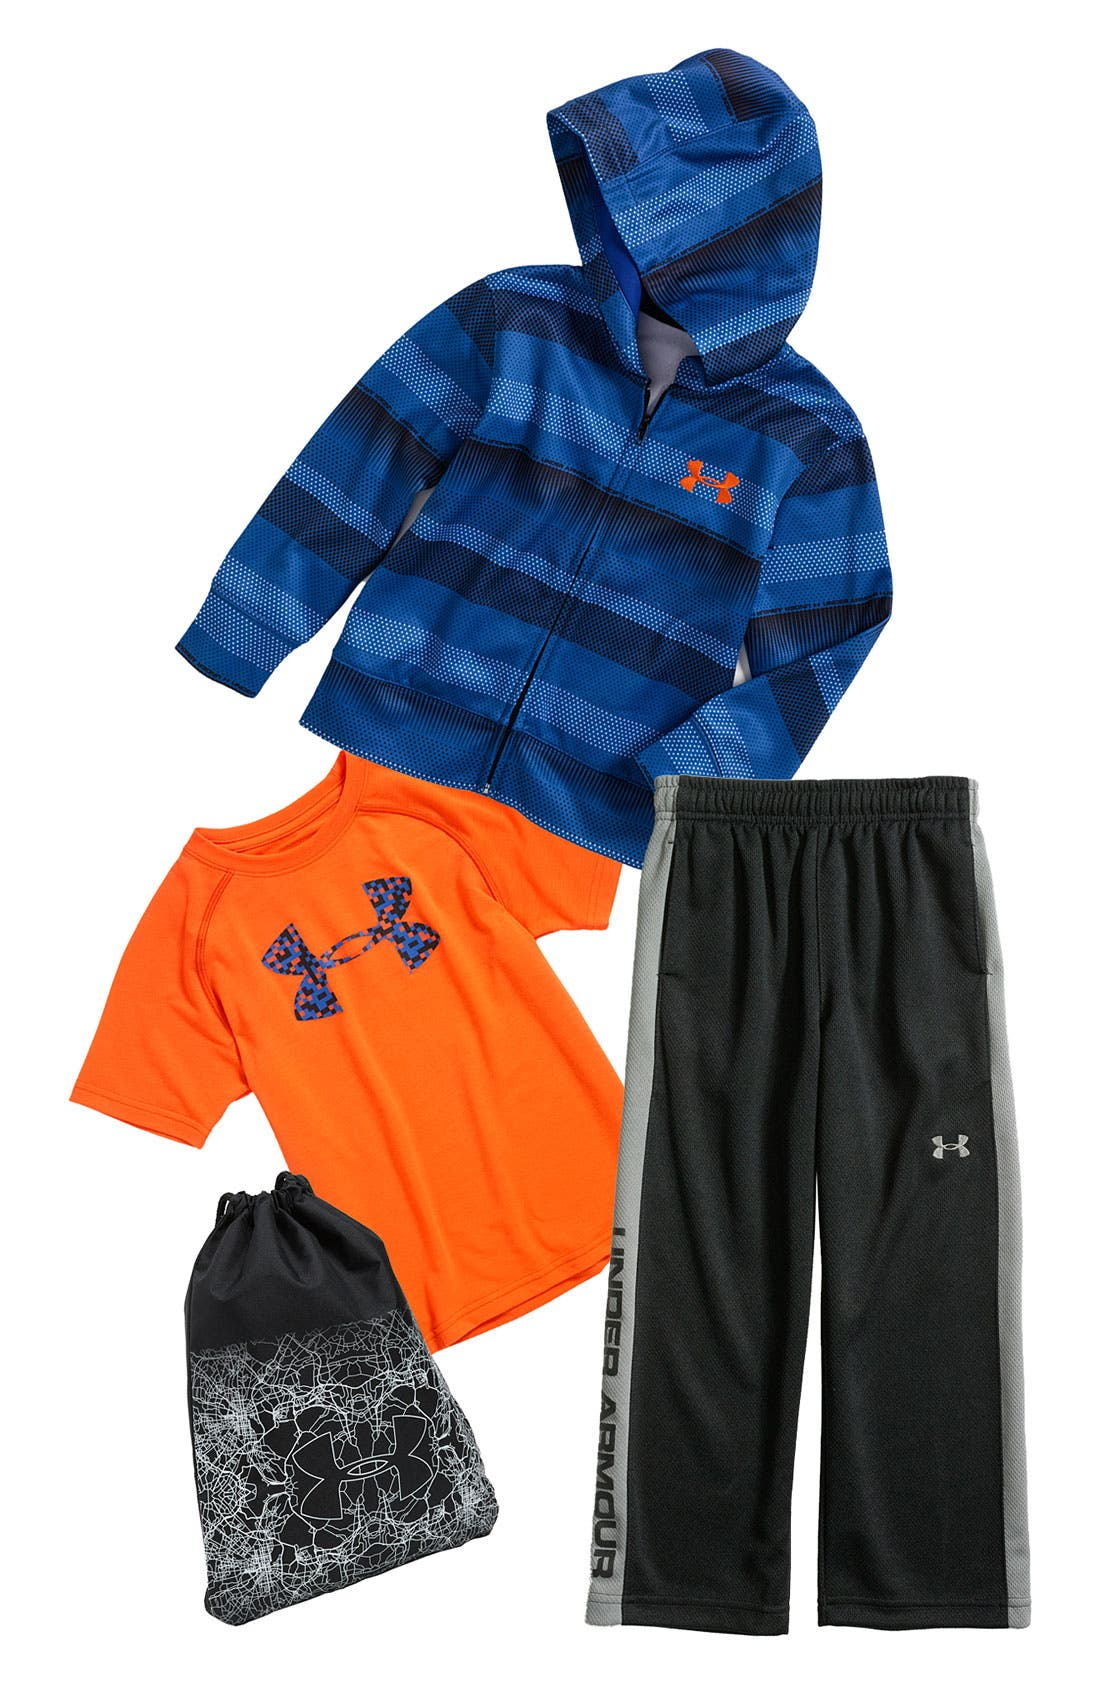 Main Image - Under Armour T-Shirt, Hoodie & Pants (Little Boys)